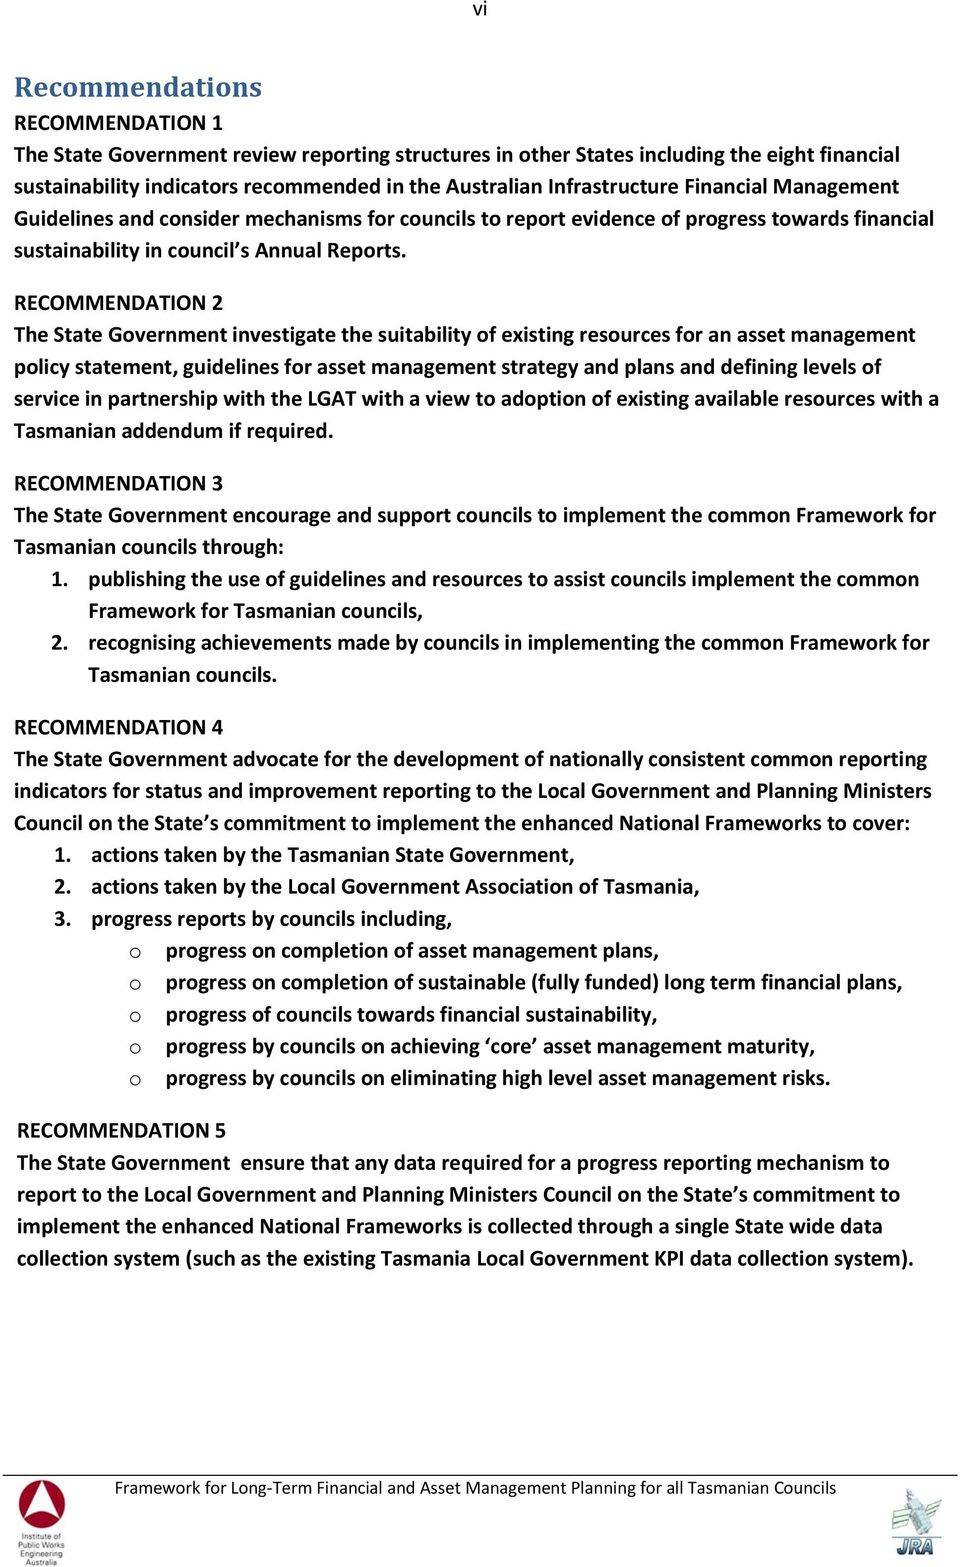 RECOMMENDATION 2 The State Government investigate the suitability of existing resources for an asset management policy statement, guidelines for asset management strategy and plans and defining